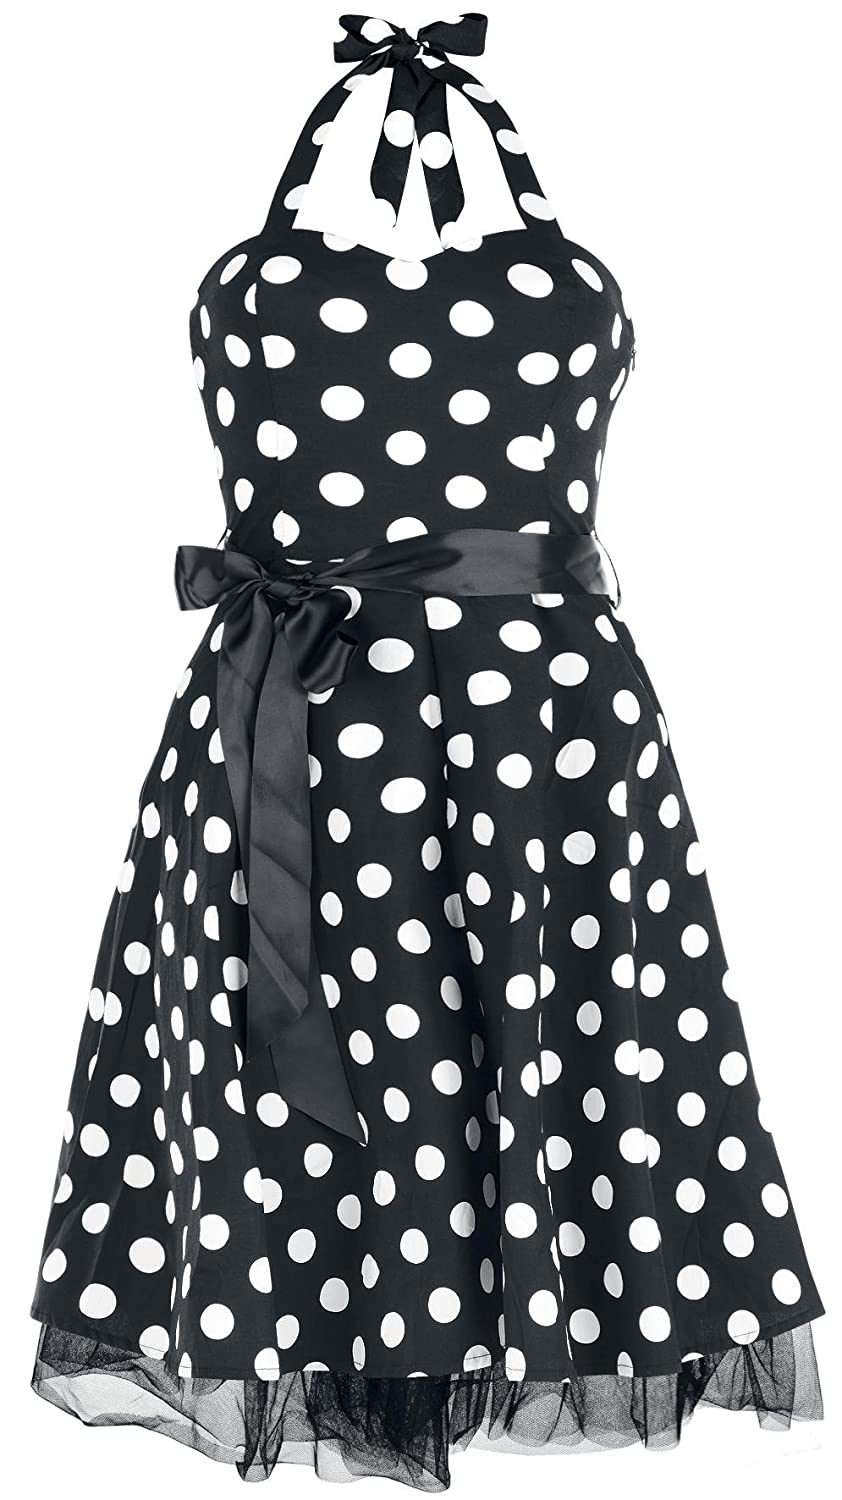 H&R London Big Dot Dress Kleid schwarz